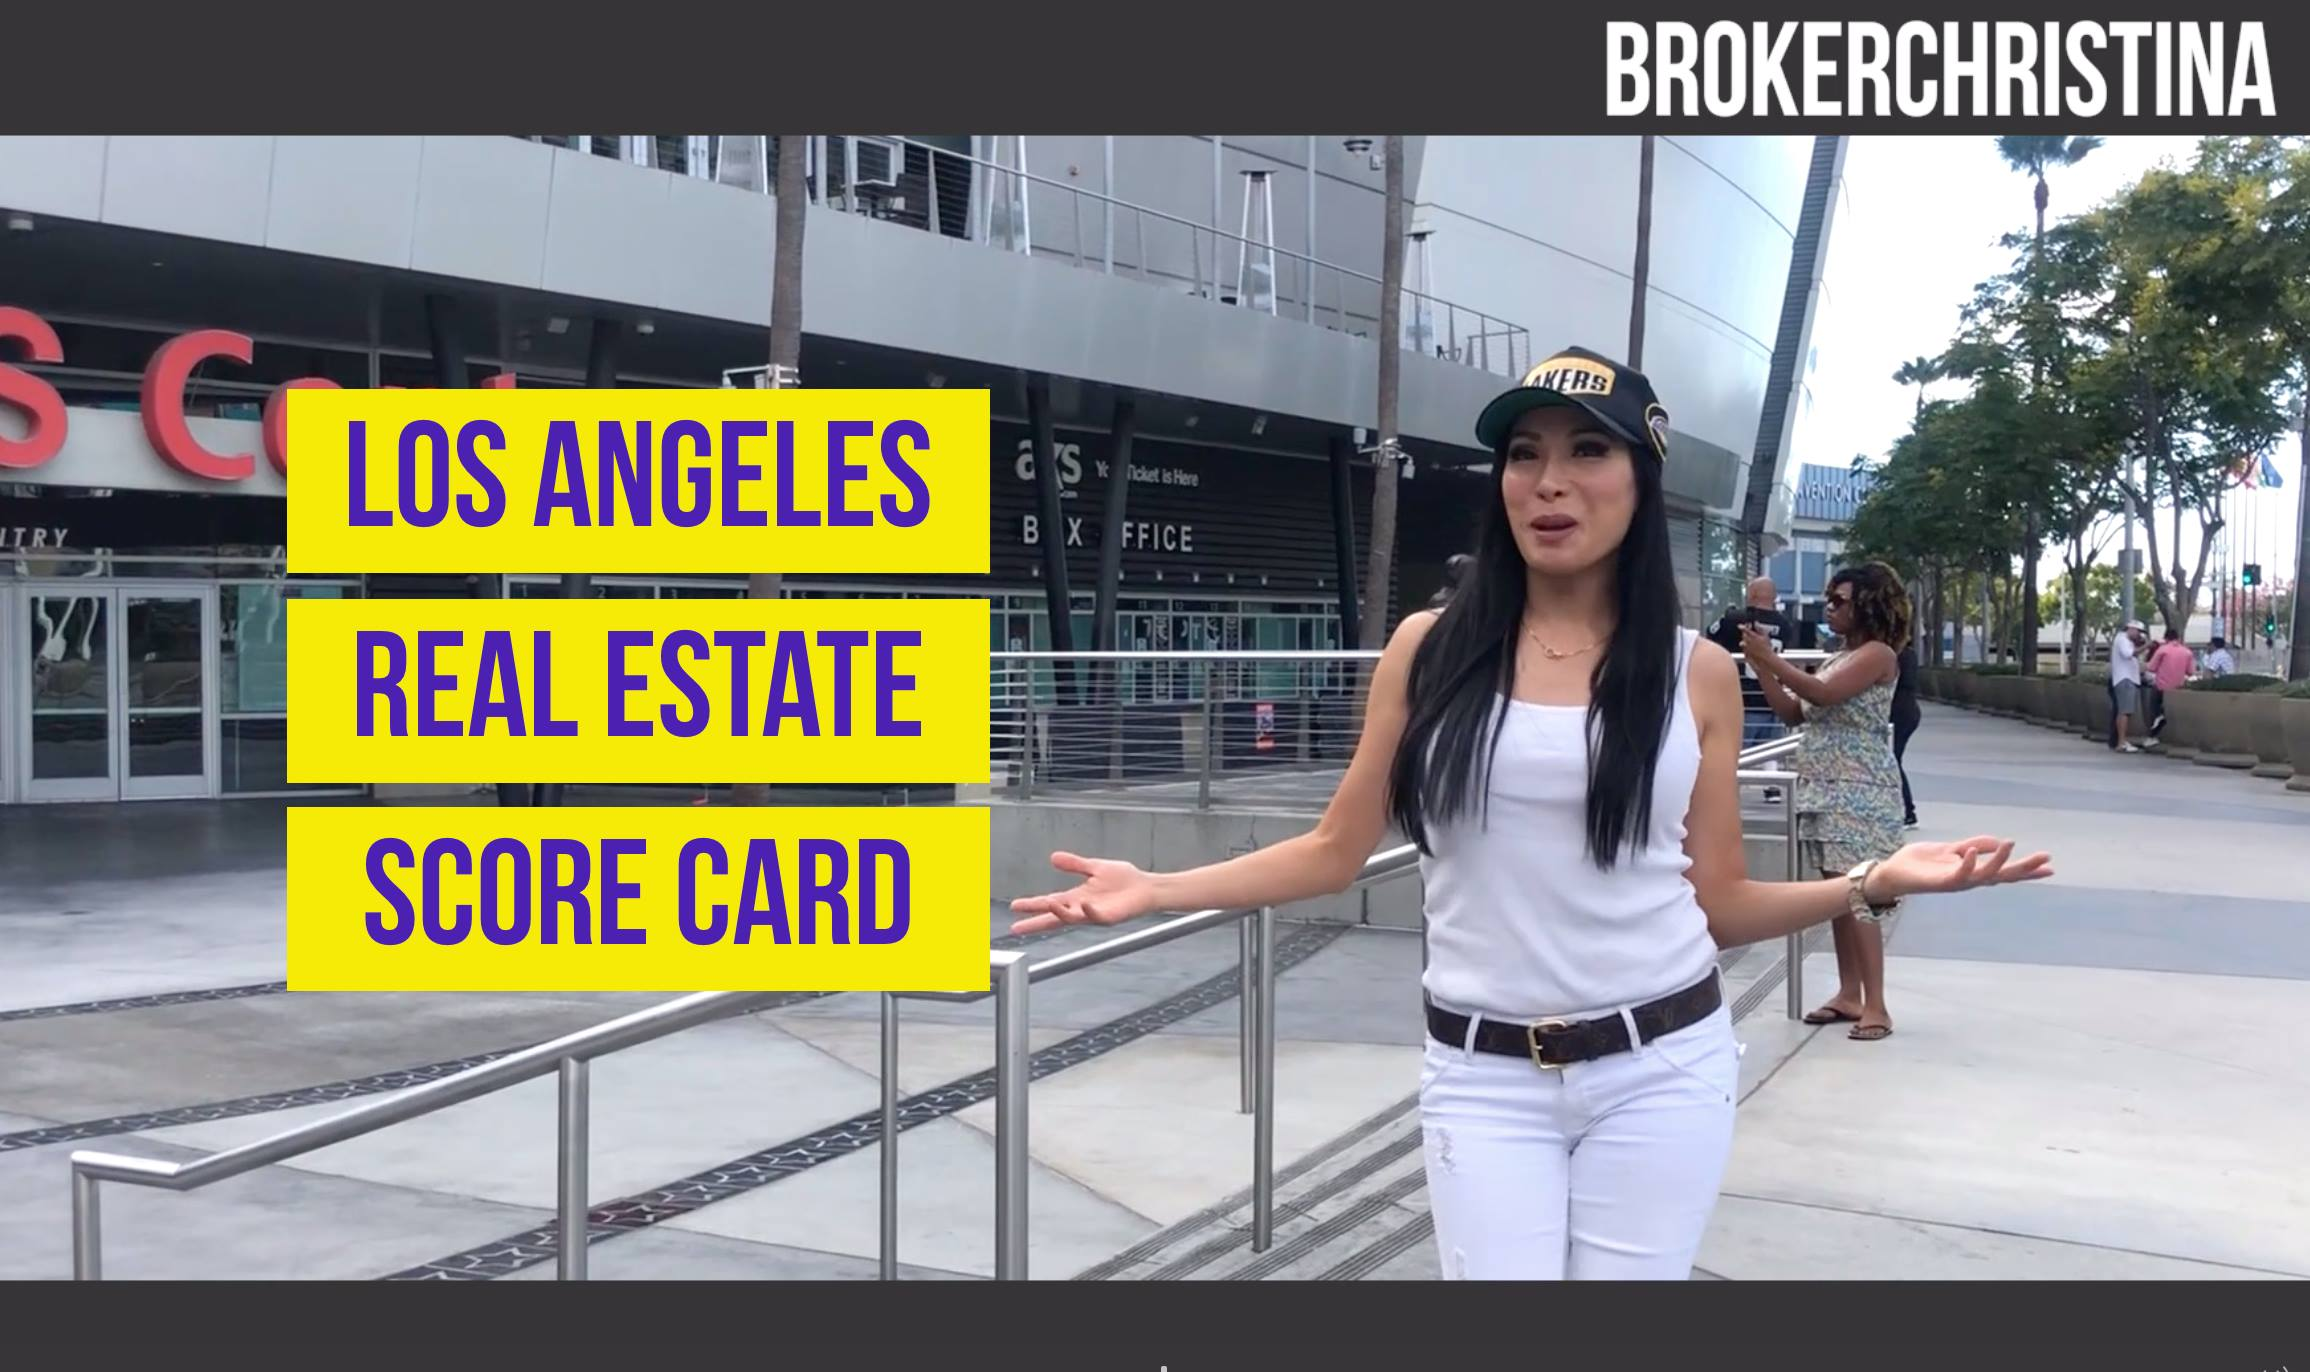 LA REAL ESTATE SCORE CARD